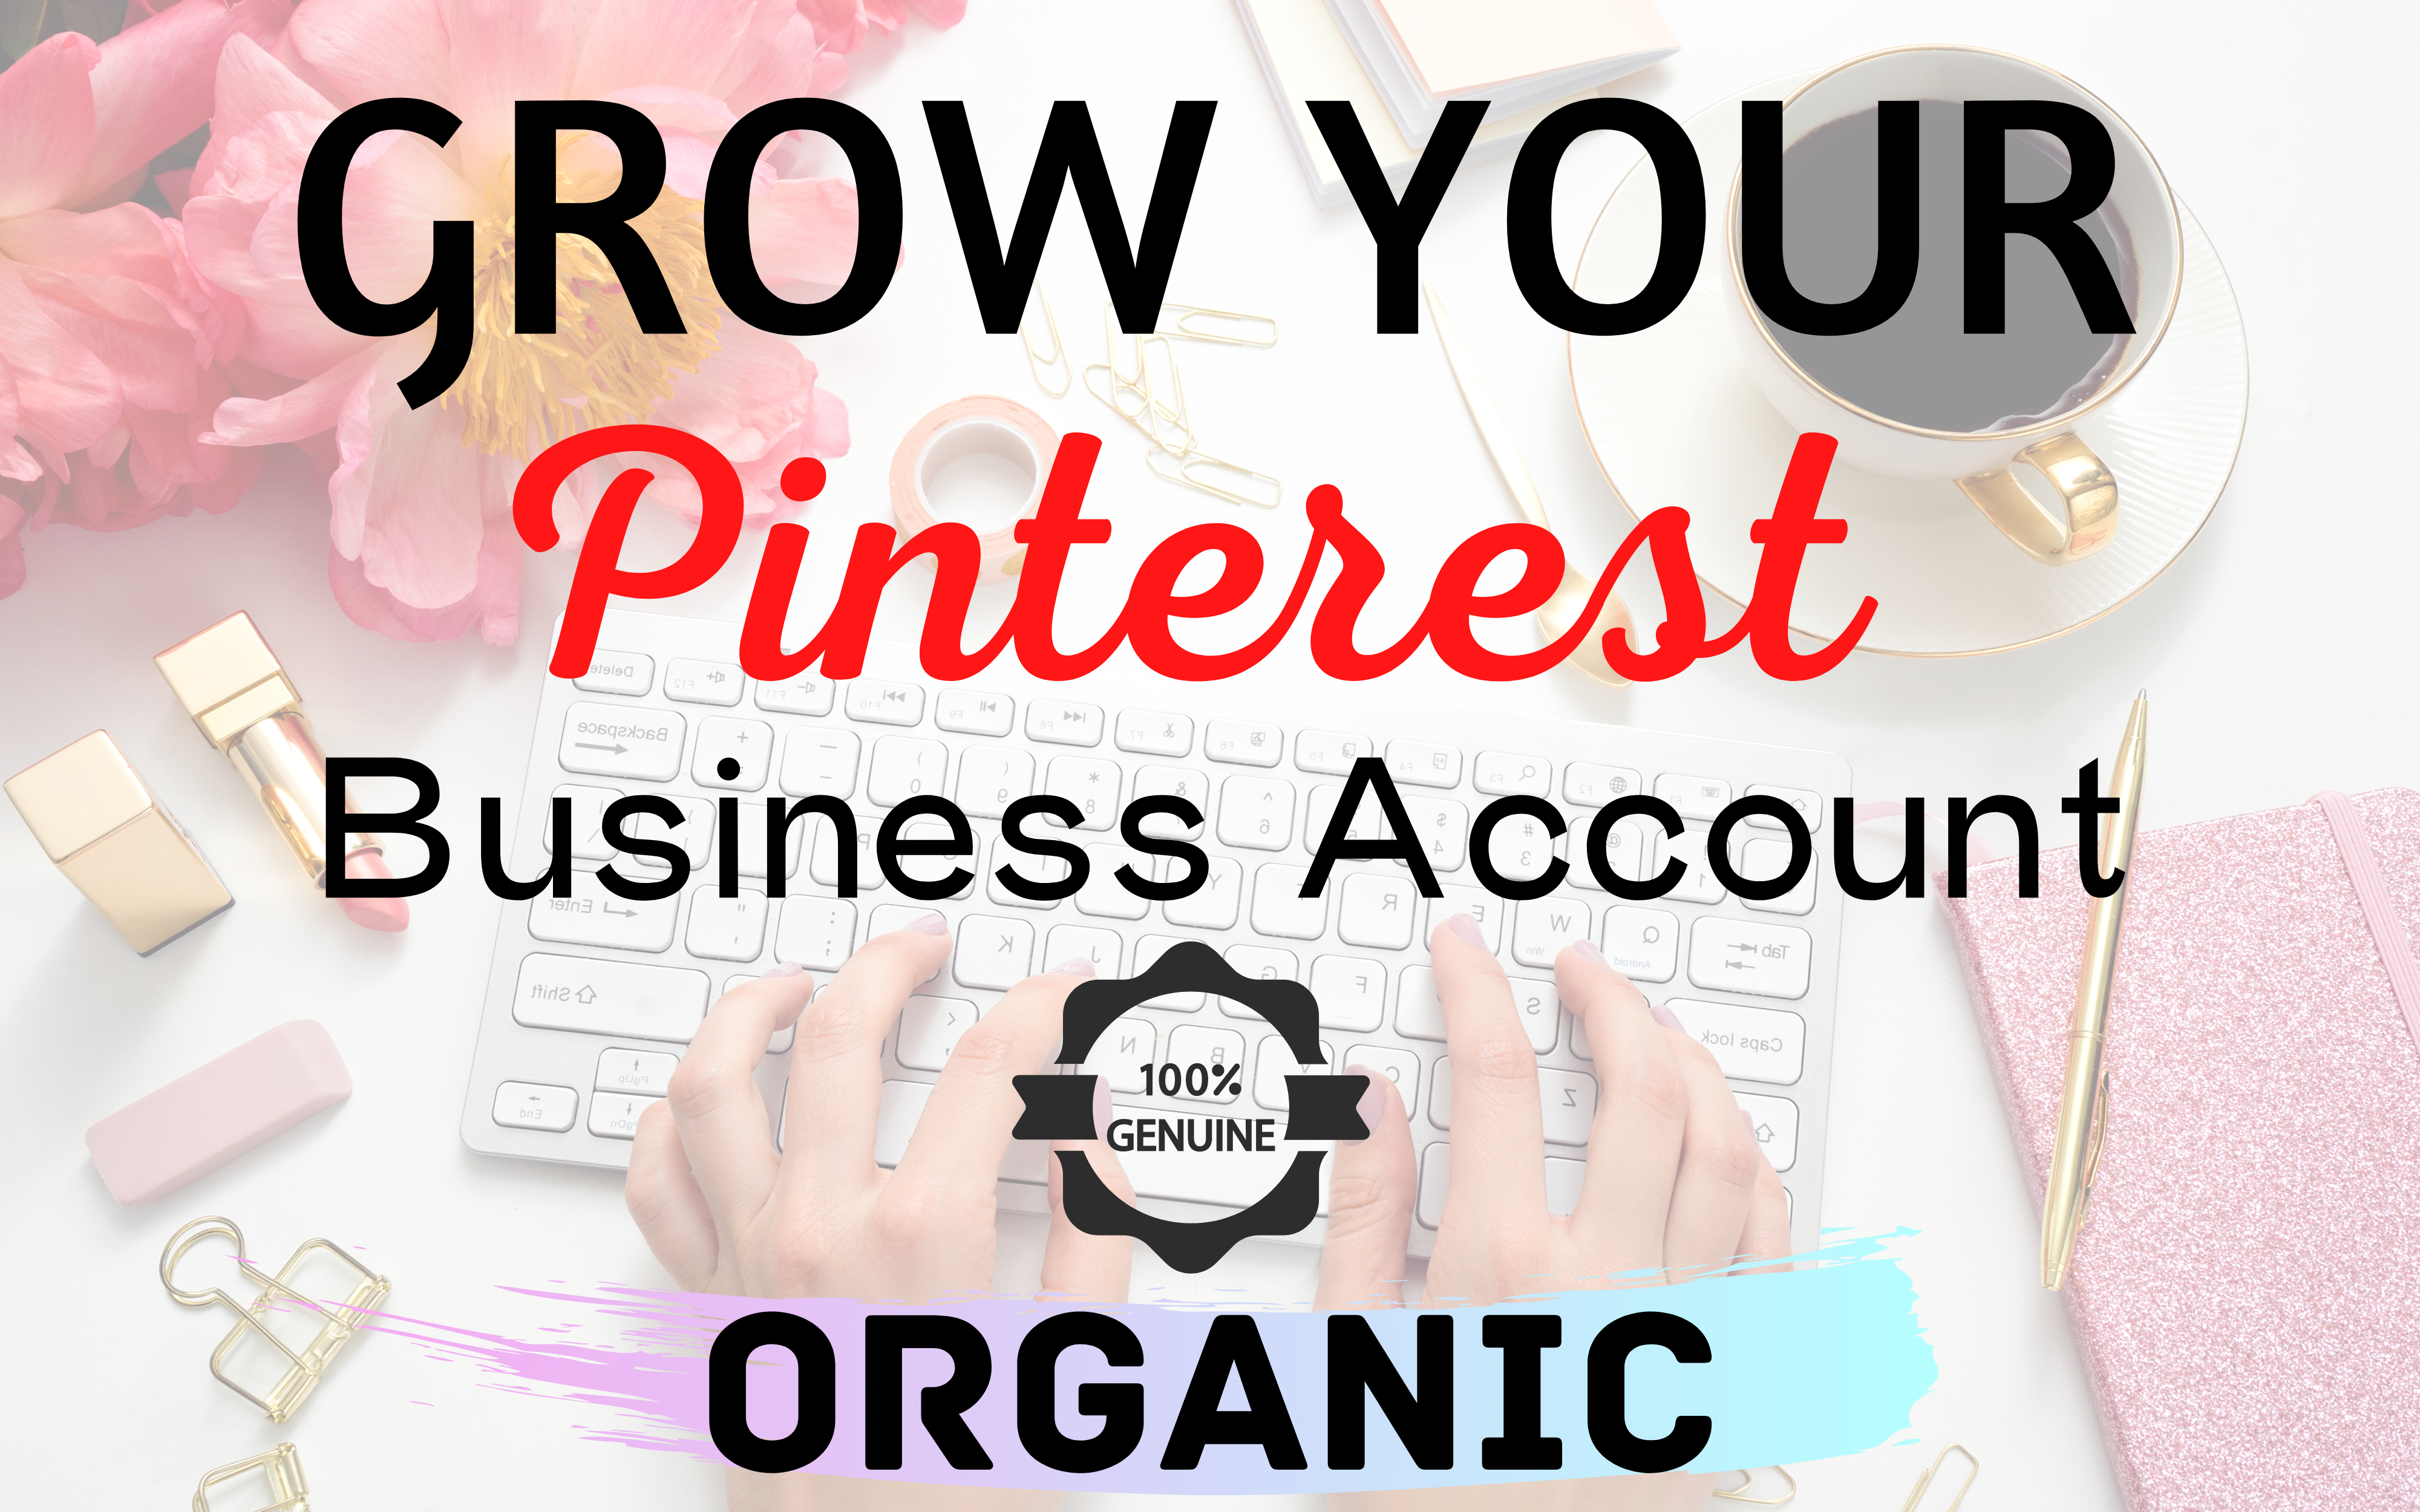 I can Manage,  Grow Organically Your Pintrest Business Account